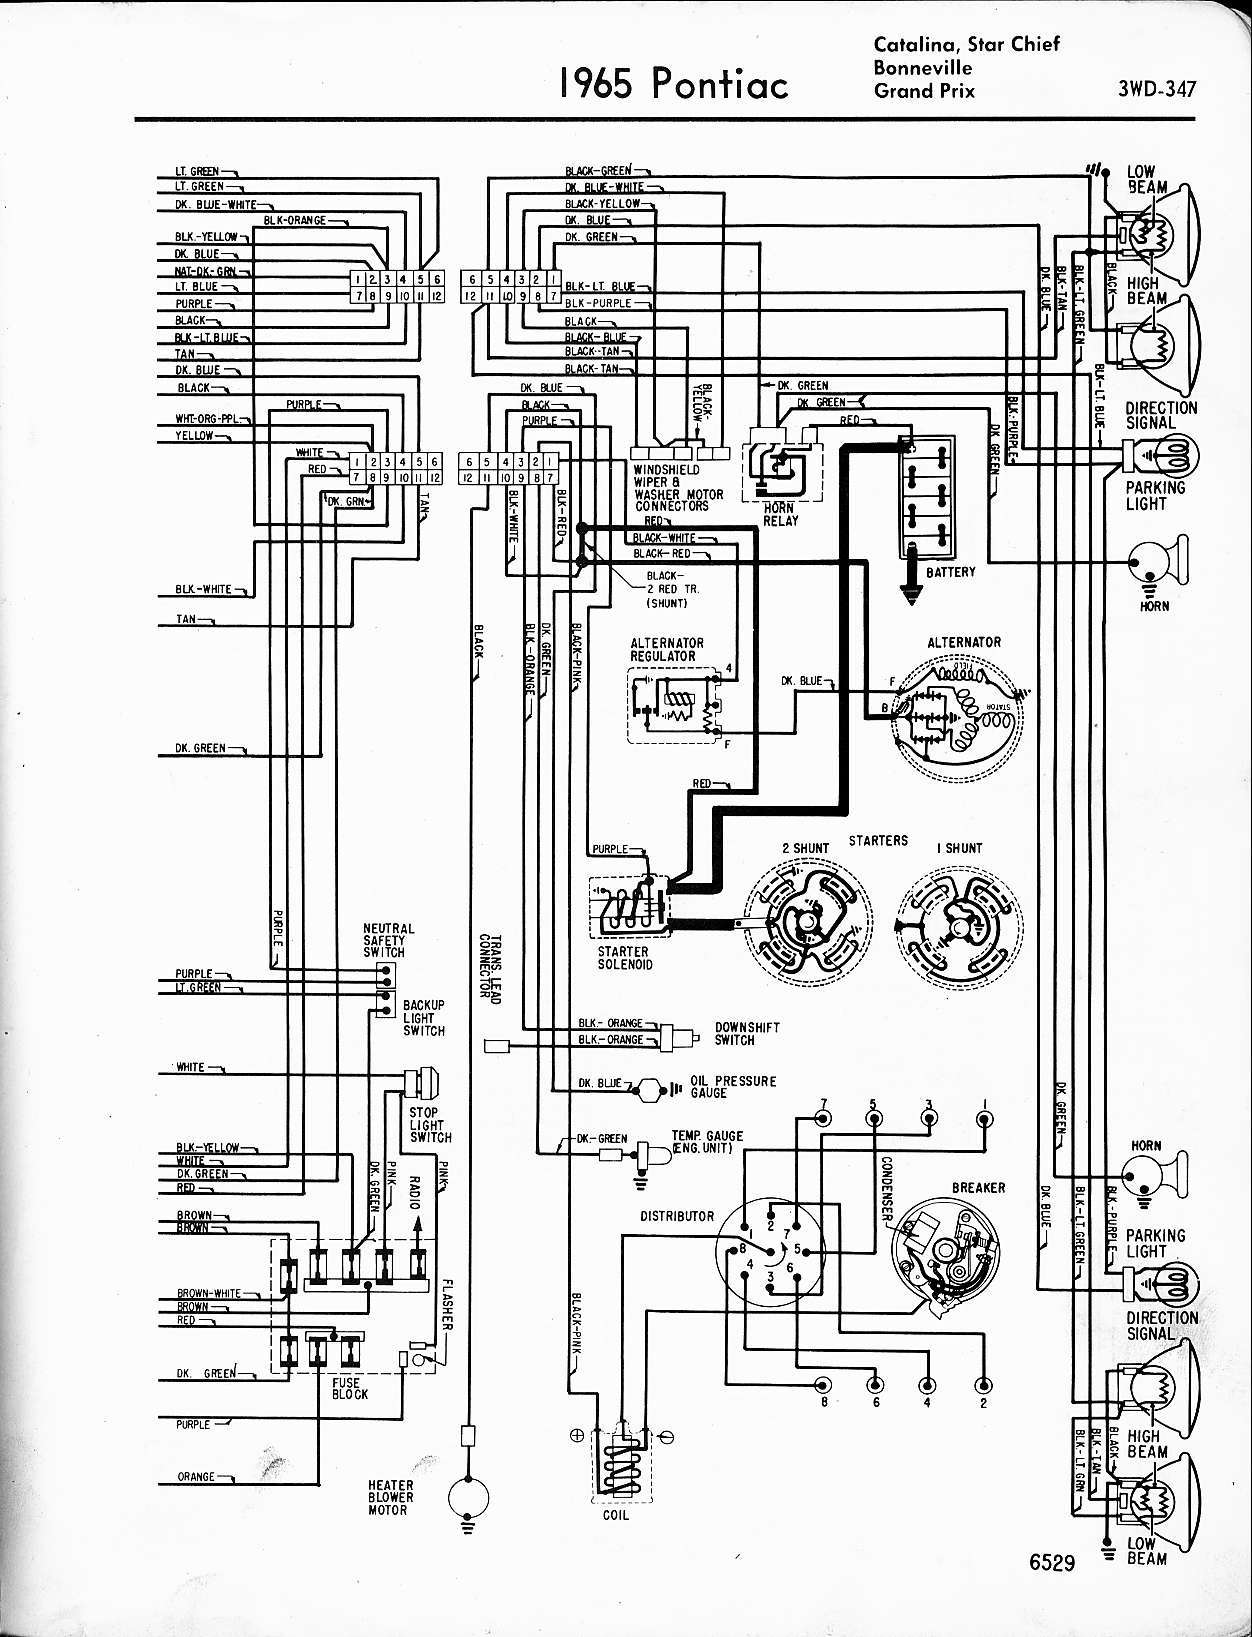 hight resolution of 1962 pontiac heater wiring diagram wiring diagram 2000 pontiac montana wiring schematics pontiac wiring schematics